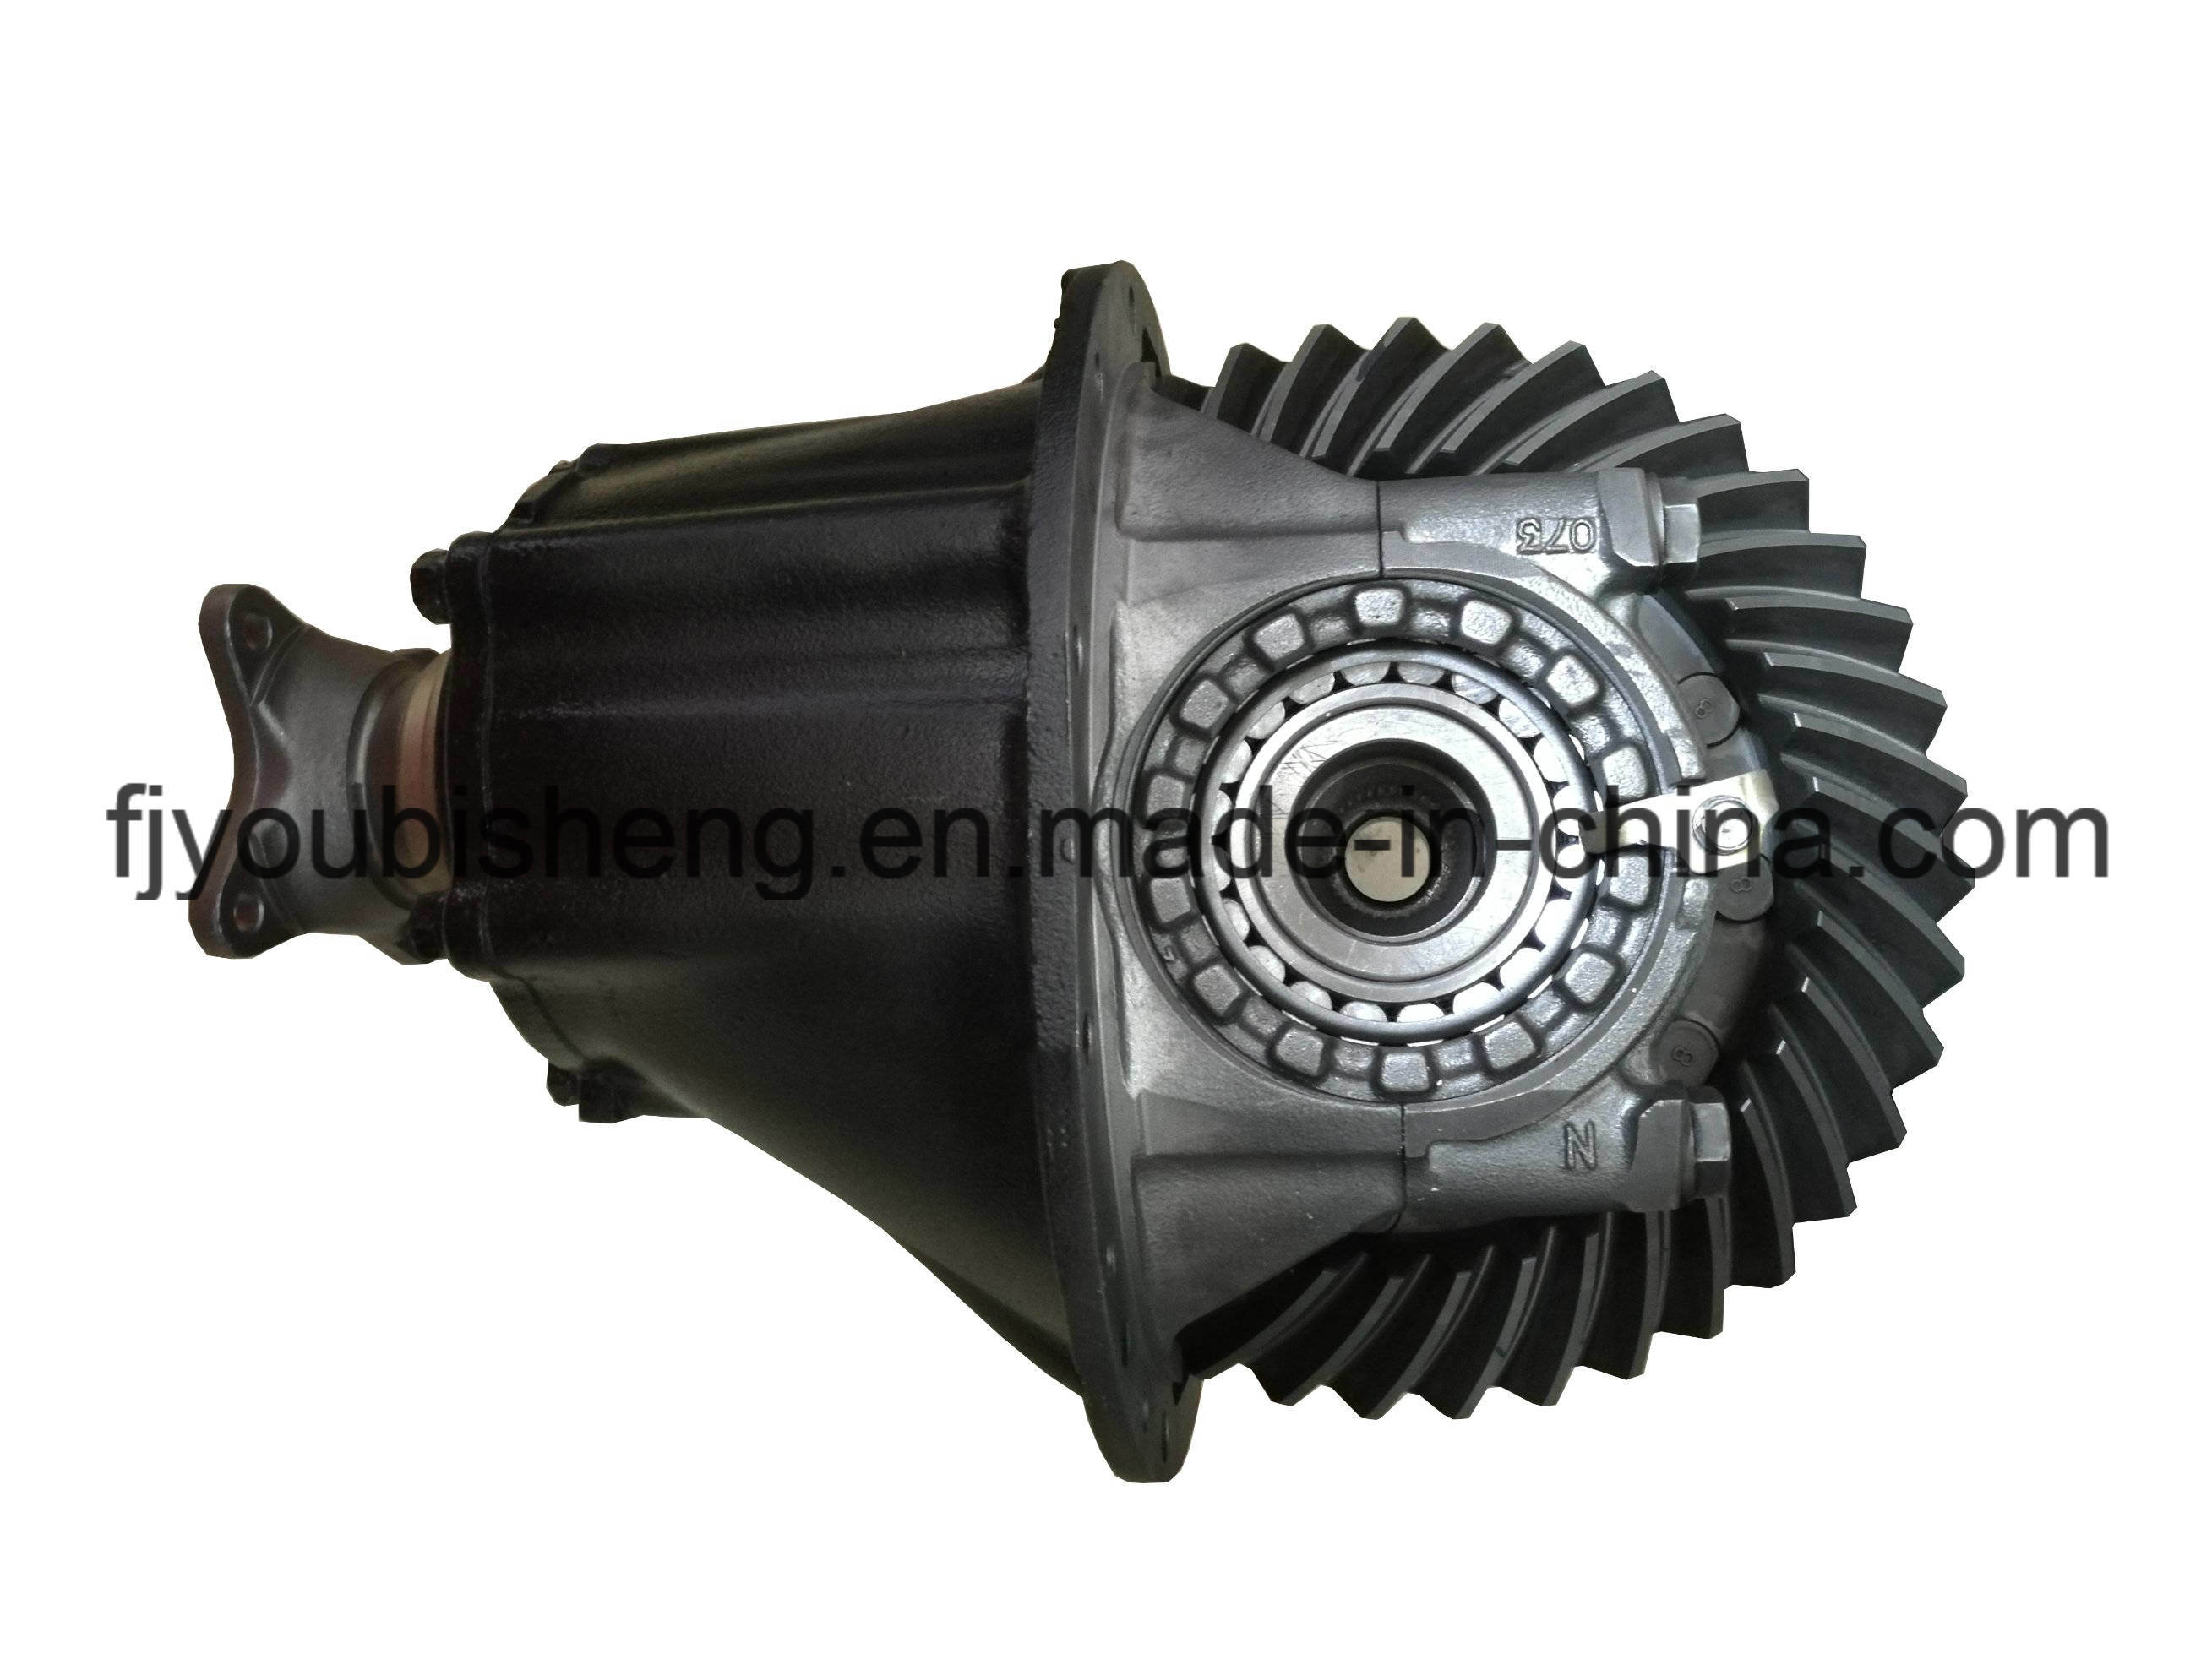 Hino 500, Reducer Assembly/Differential Assembly, 41201-E0120